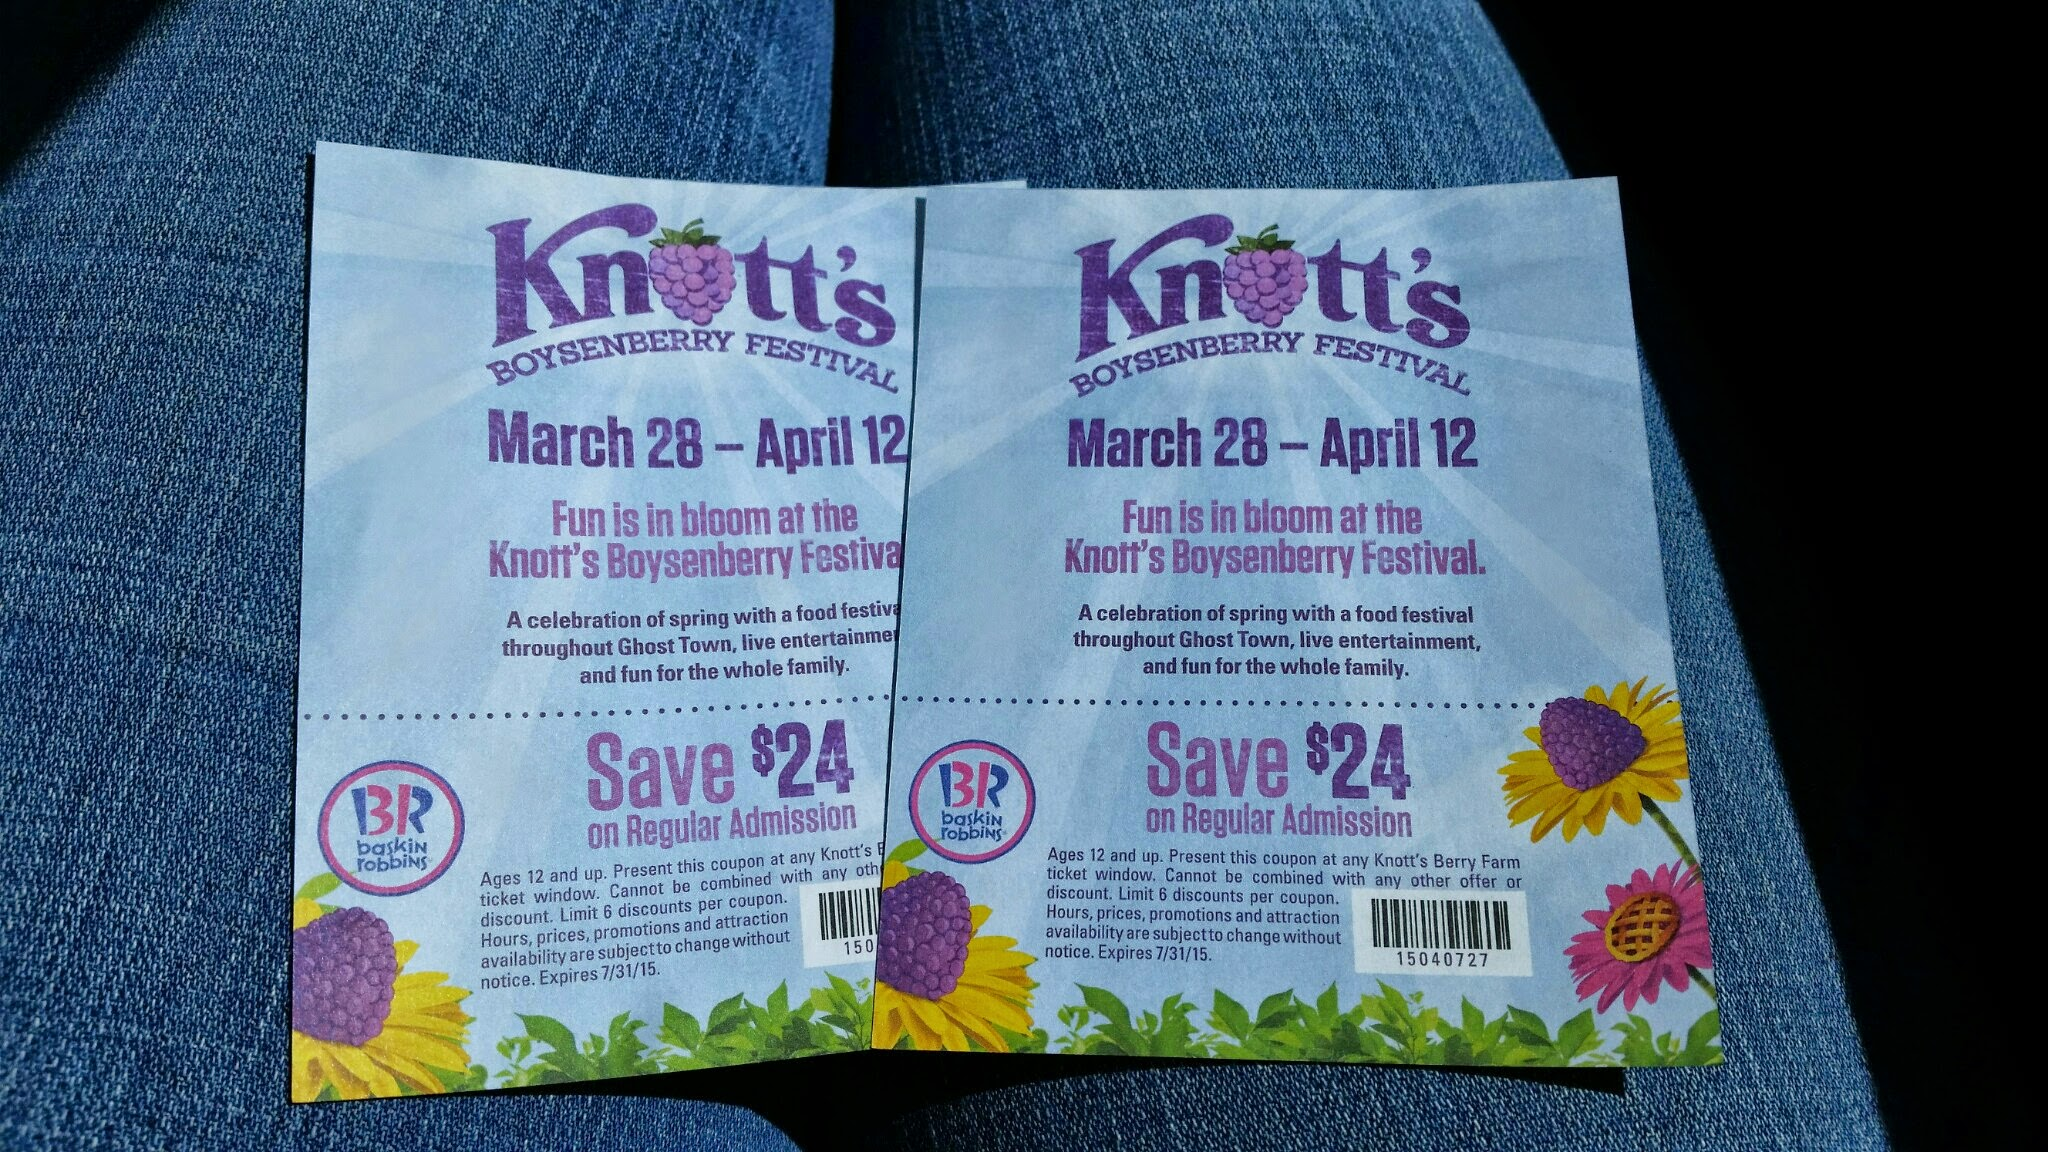 photo regarding Knotts Berry Farm Printable Coupons referred to as Knotts Berry Farm Low cost Tickets versus Baskin Robbins 7